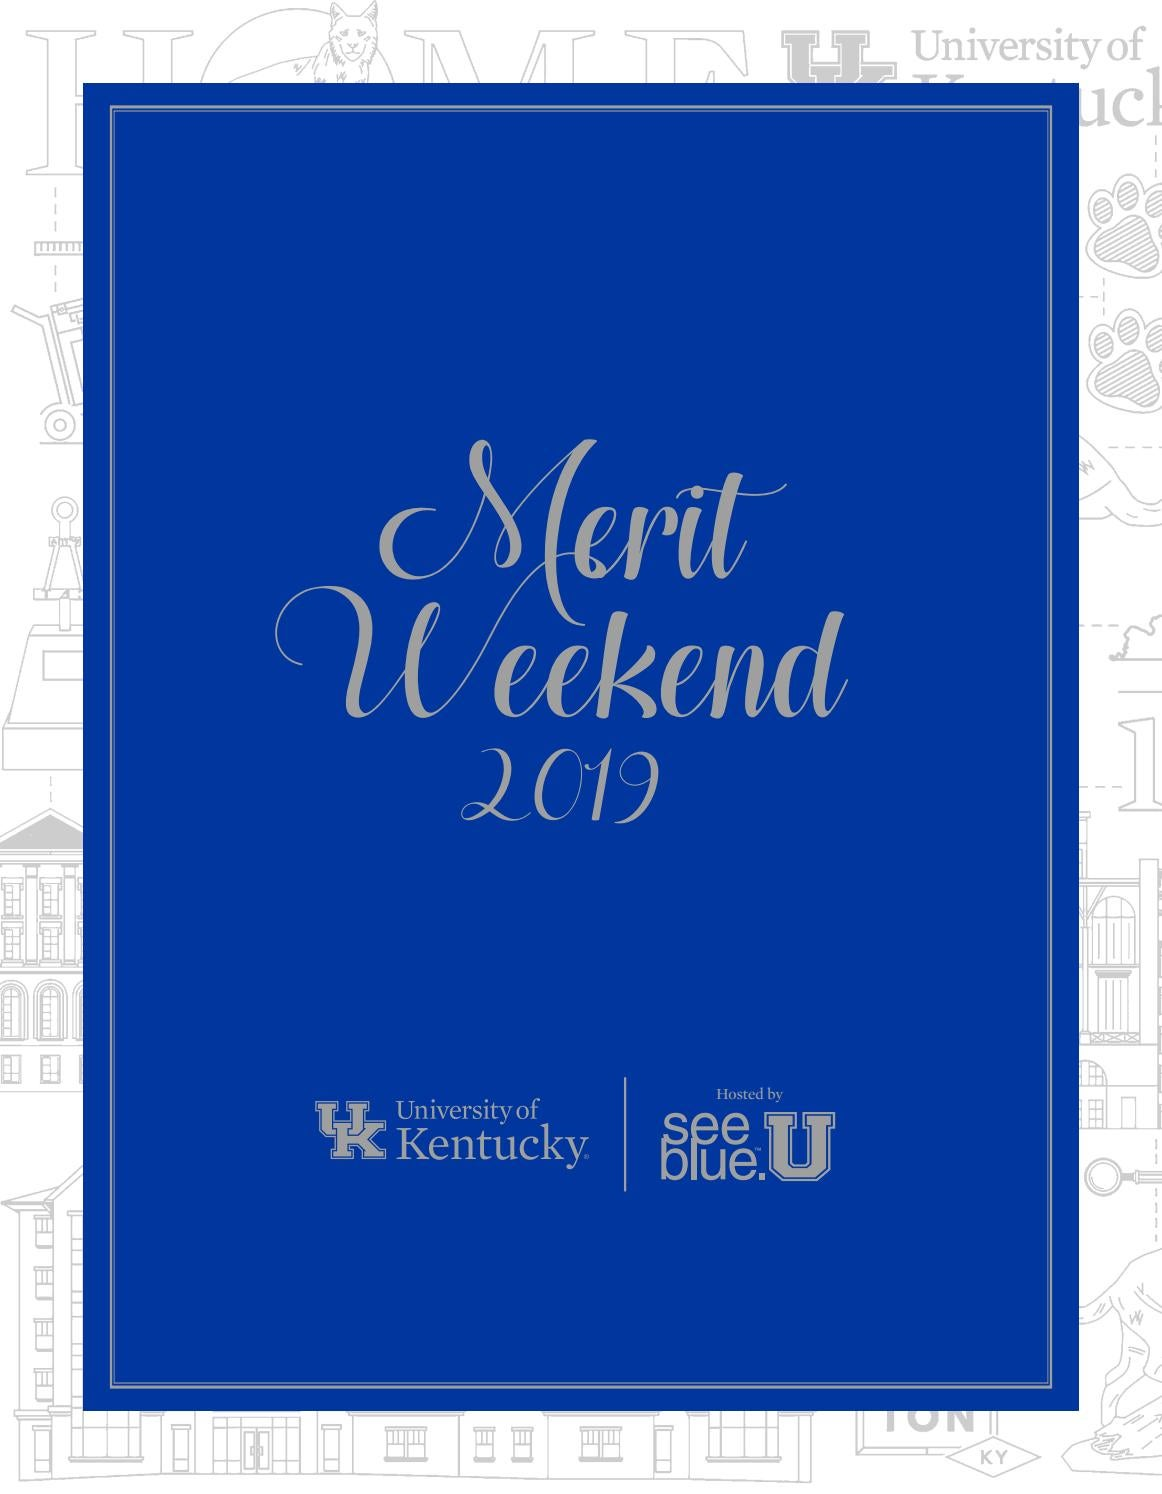 University Of Kentucky Majors >> 2019 Merit Weekend Brochure By University Of Kentucky Issuu